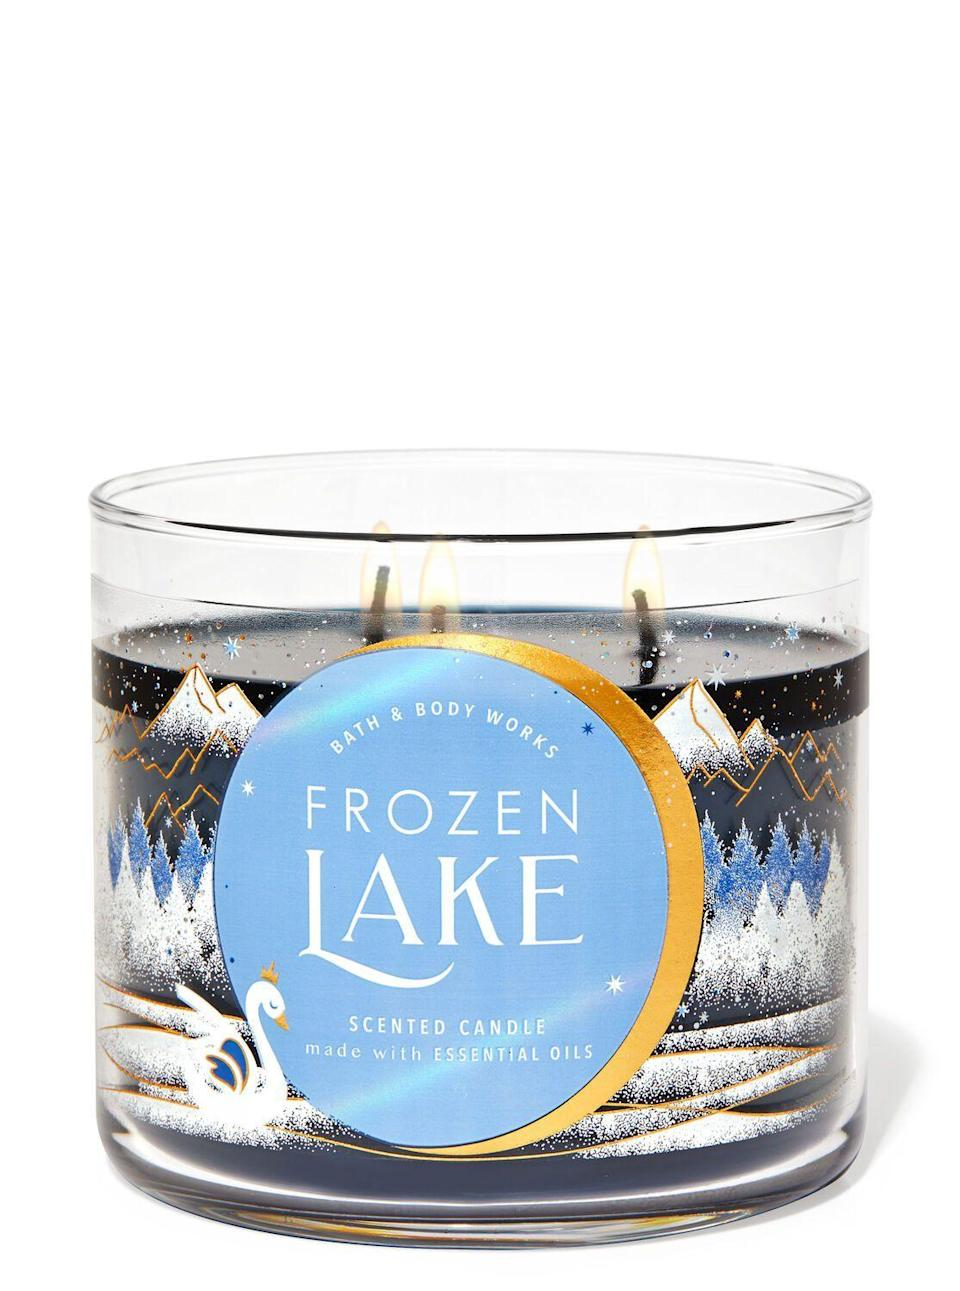 "<p><strong>Bath & Body Works</strong></p><p>bathandbodyworks.com</p><p><strong>$24.50</strong></p><p><a href=""https://www.bathandbodyworks.com/p/frozen-lake-3-wick-candle-026180764.html"" rel=""nofollow noopener"" target=""_blank"" data-ylk=""slk:Shop Now"" class=""link rapid-noclick-resp"">Shop Now</a></p><p>If you've been missing the allure of your first crush right after gym class—aka so much Axe—then this is your best friend. <strong>More smell deets pls</strong></p>"